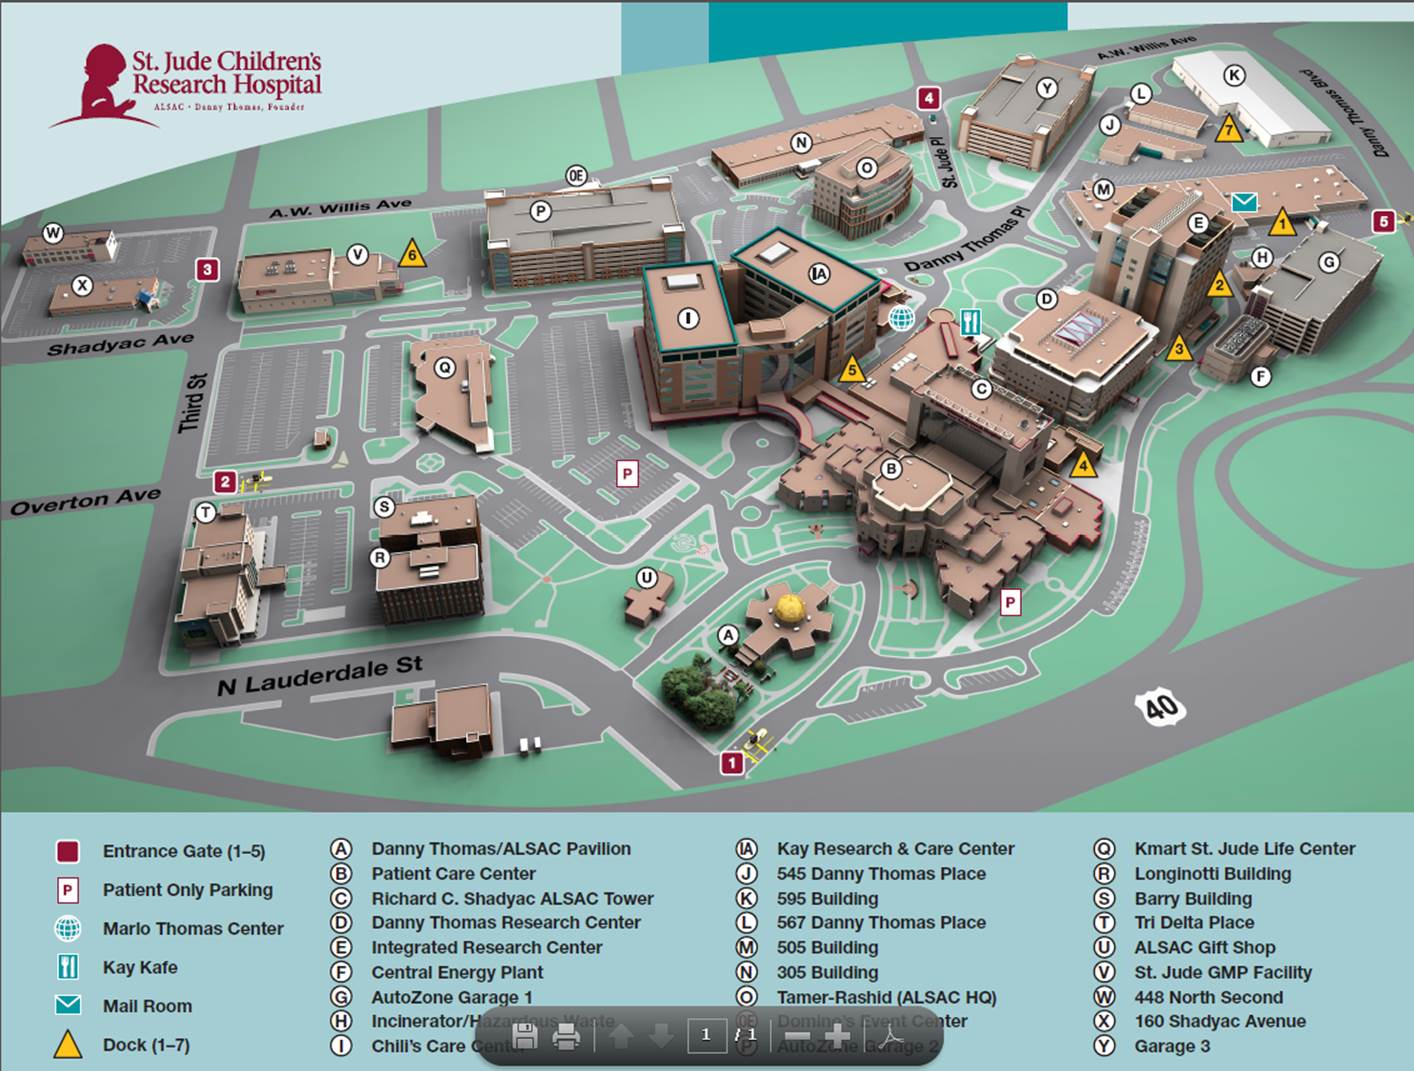 Map of St. Jude's Campus